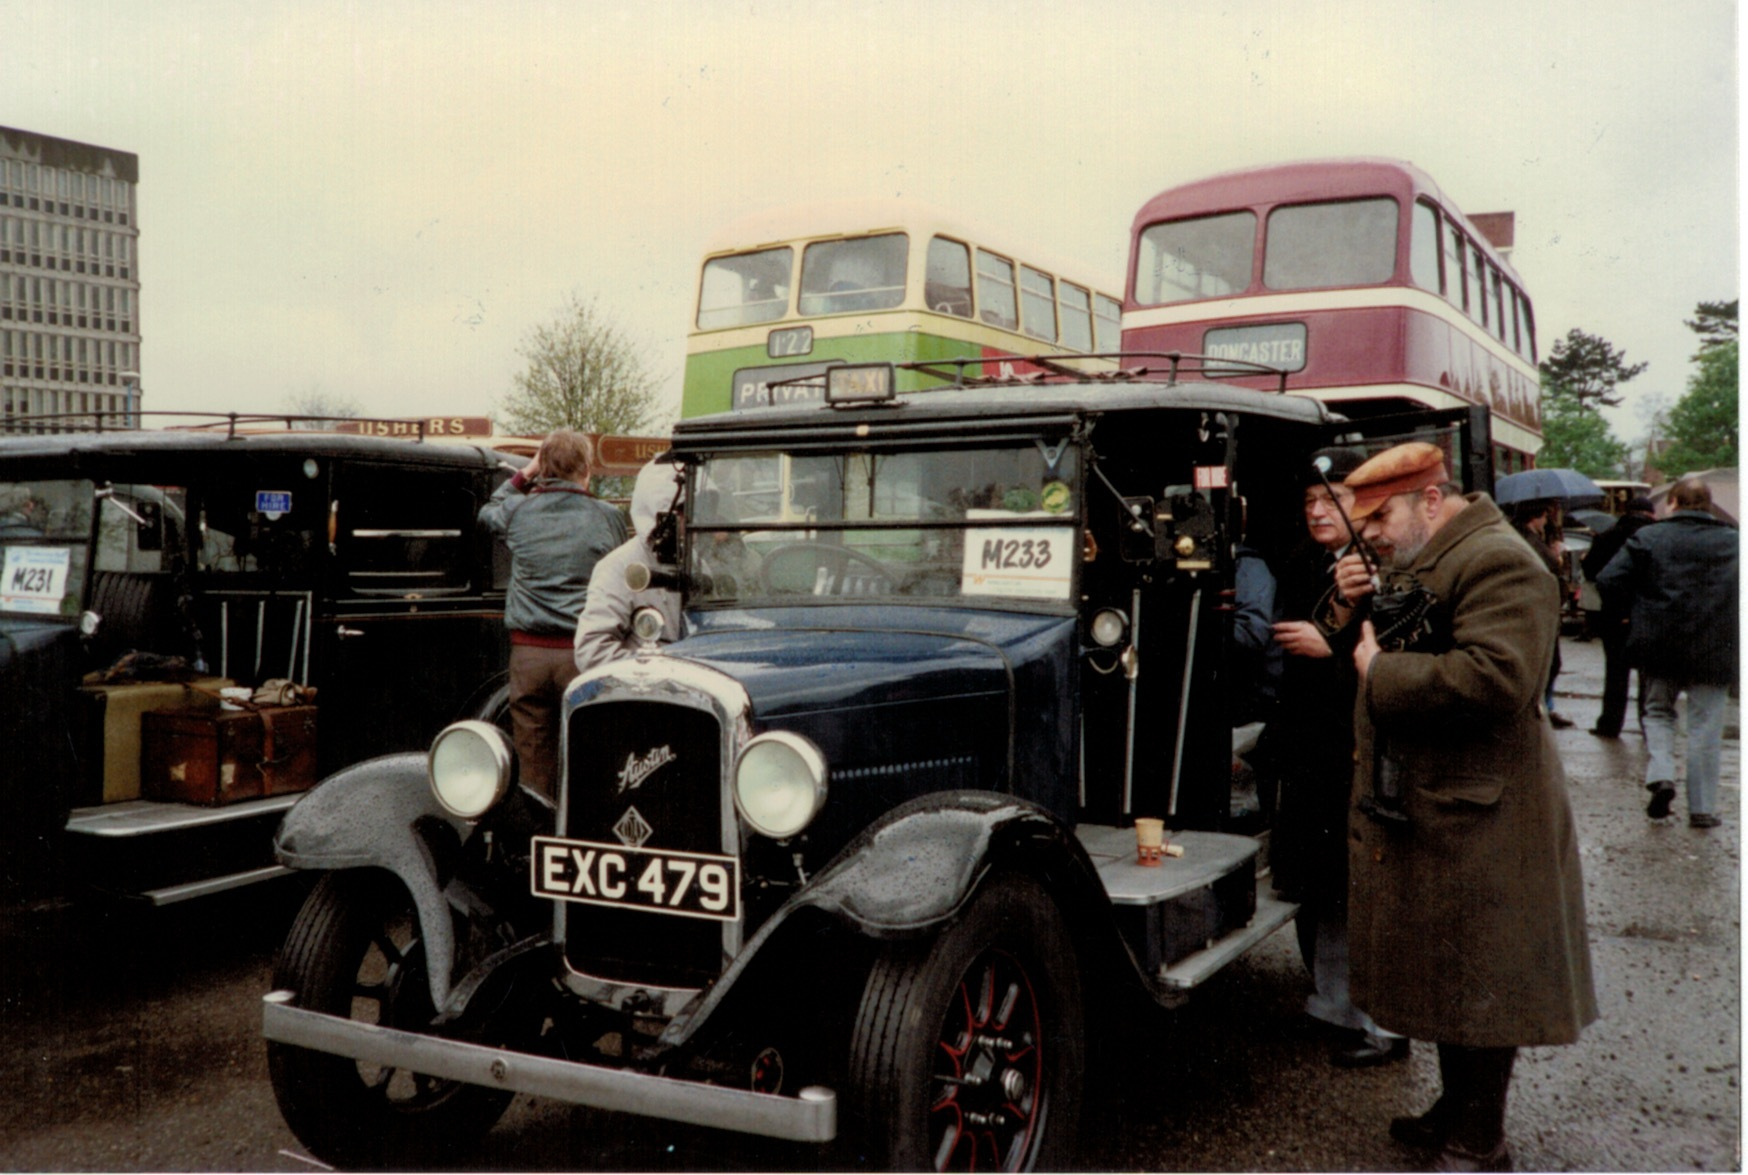 A stop for refreshments on an HCVS Brighton run in the early 1990s